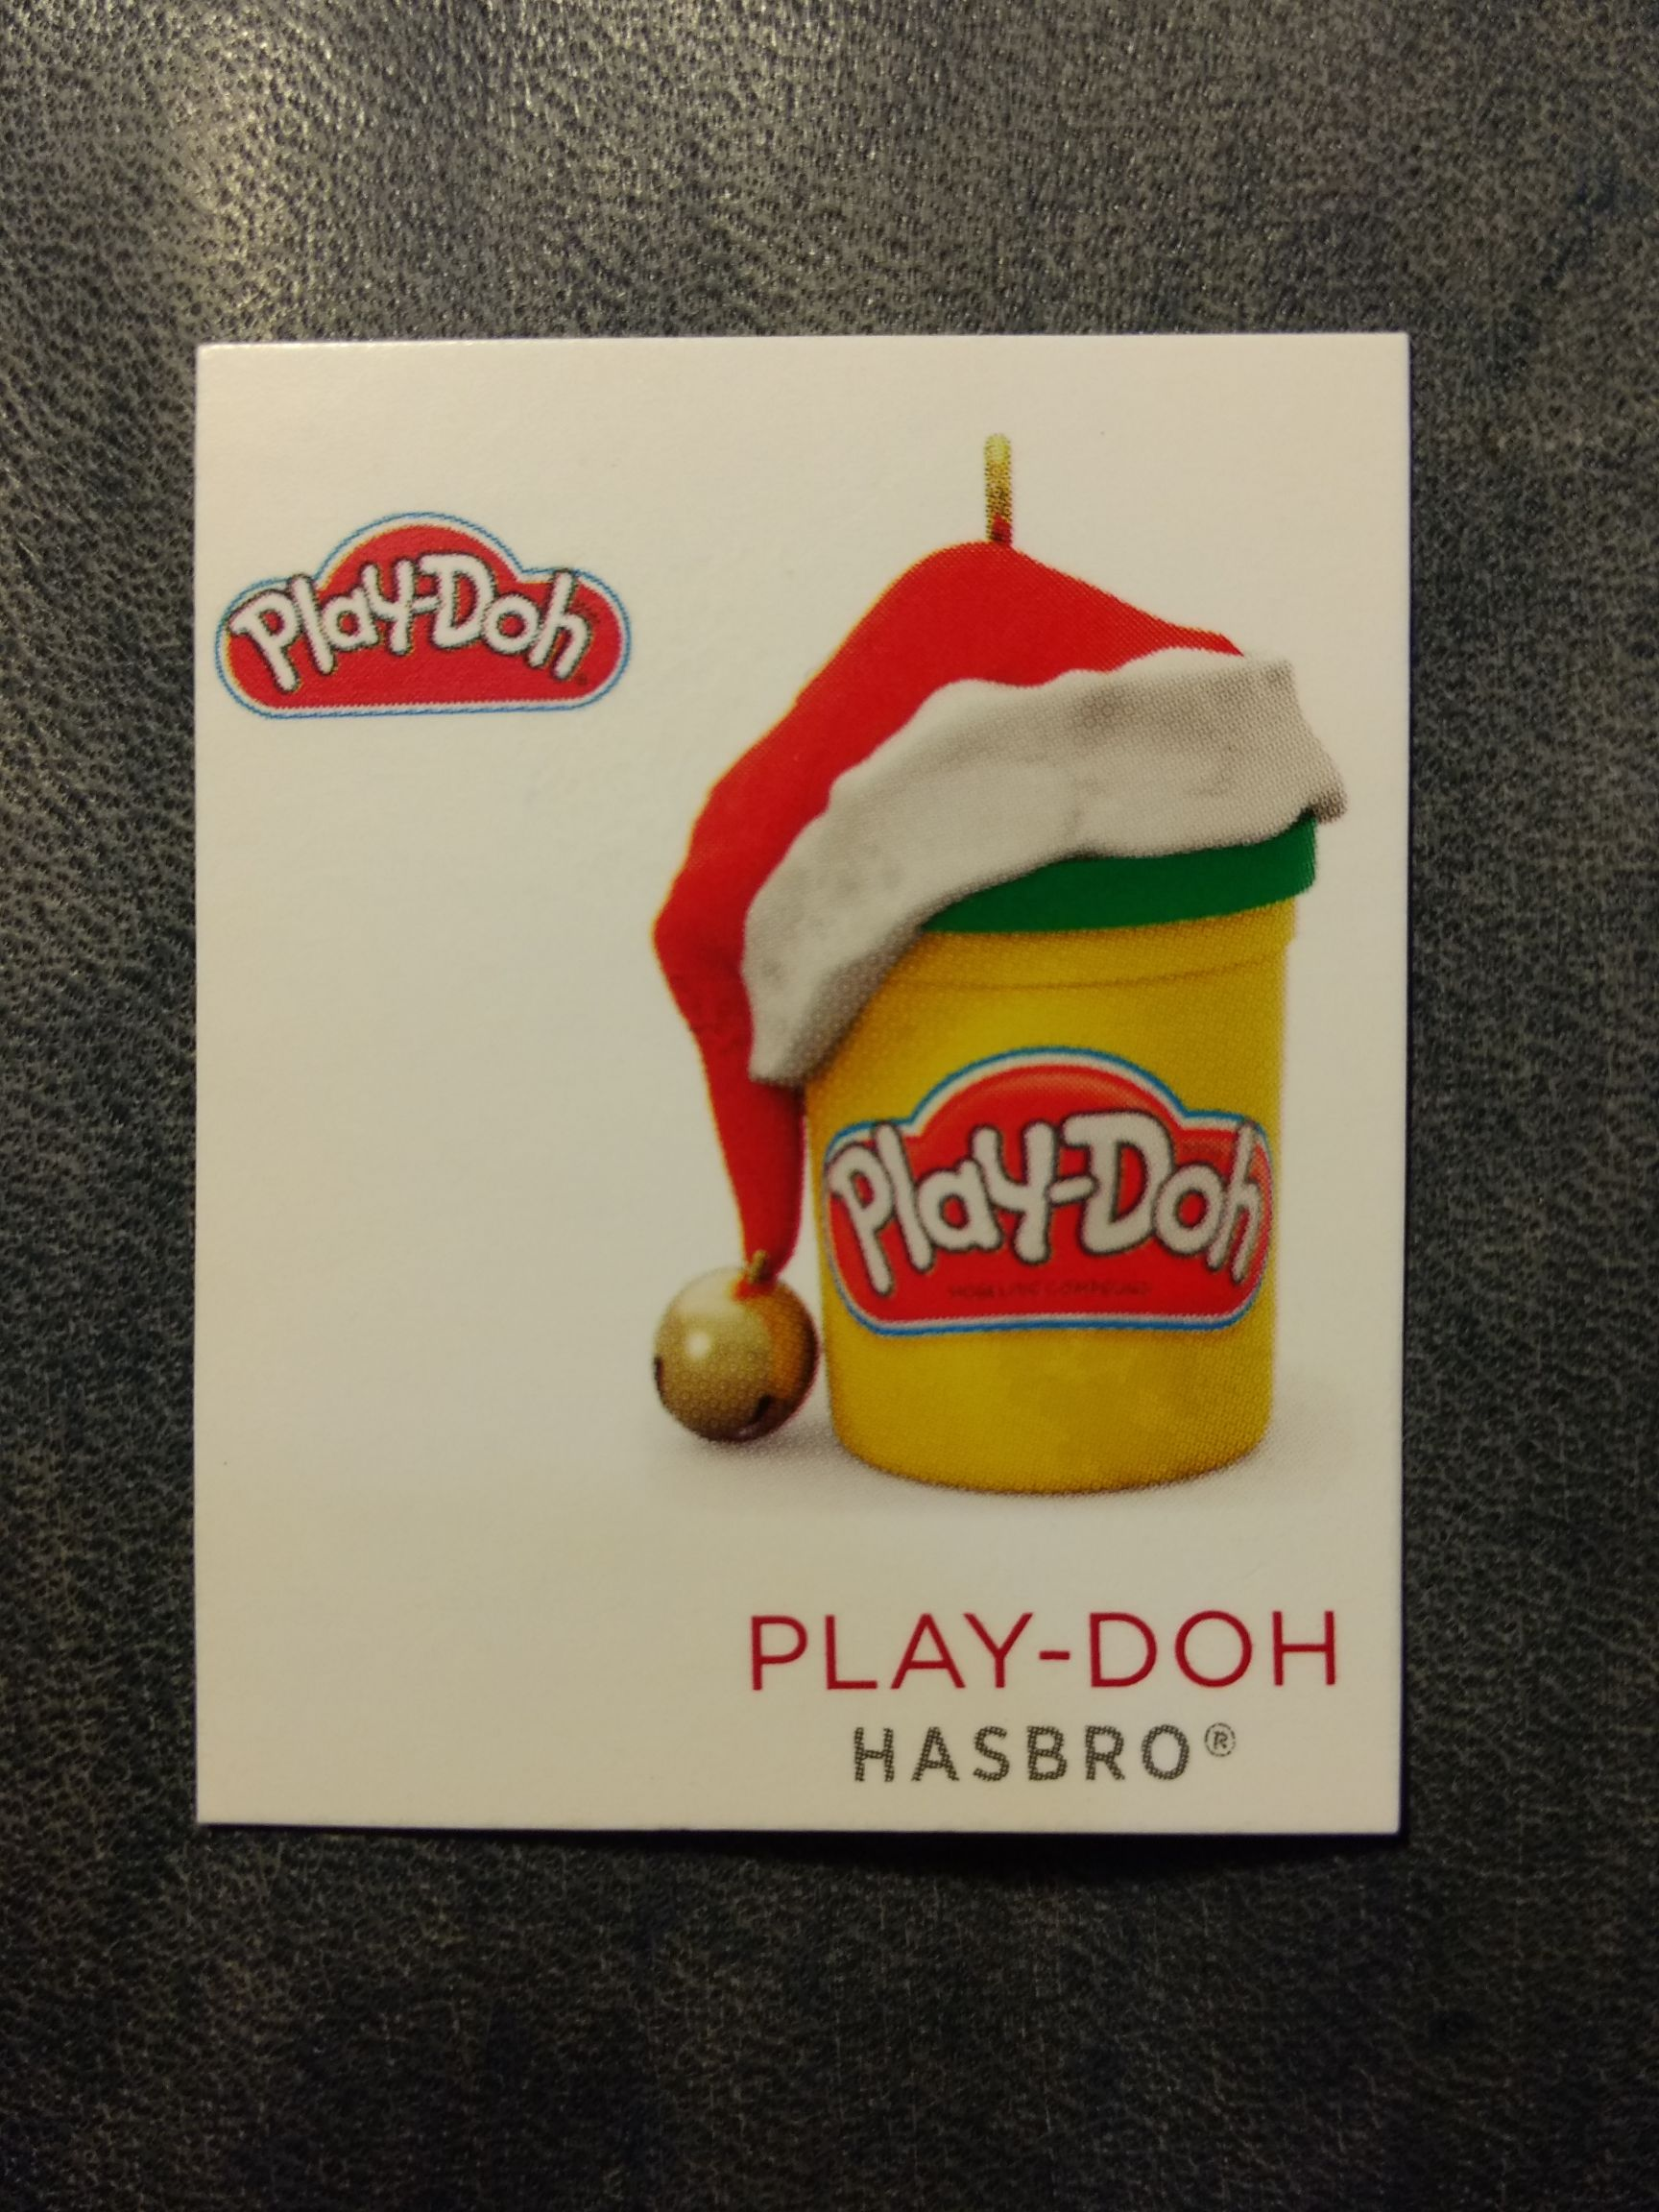 Z - Retro - Play-Doh Ornament - Hallmark front image (front cover)